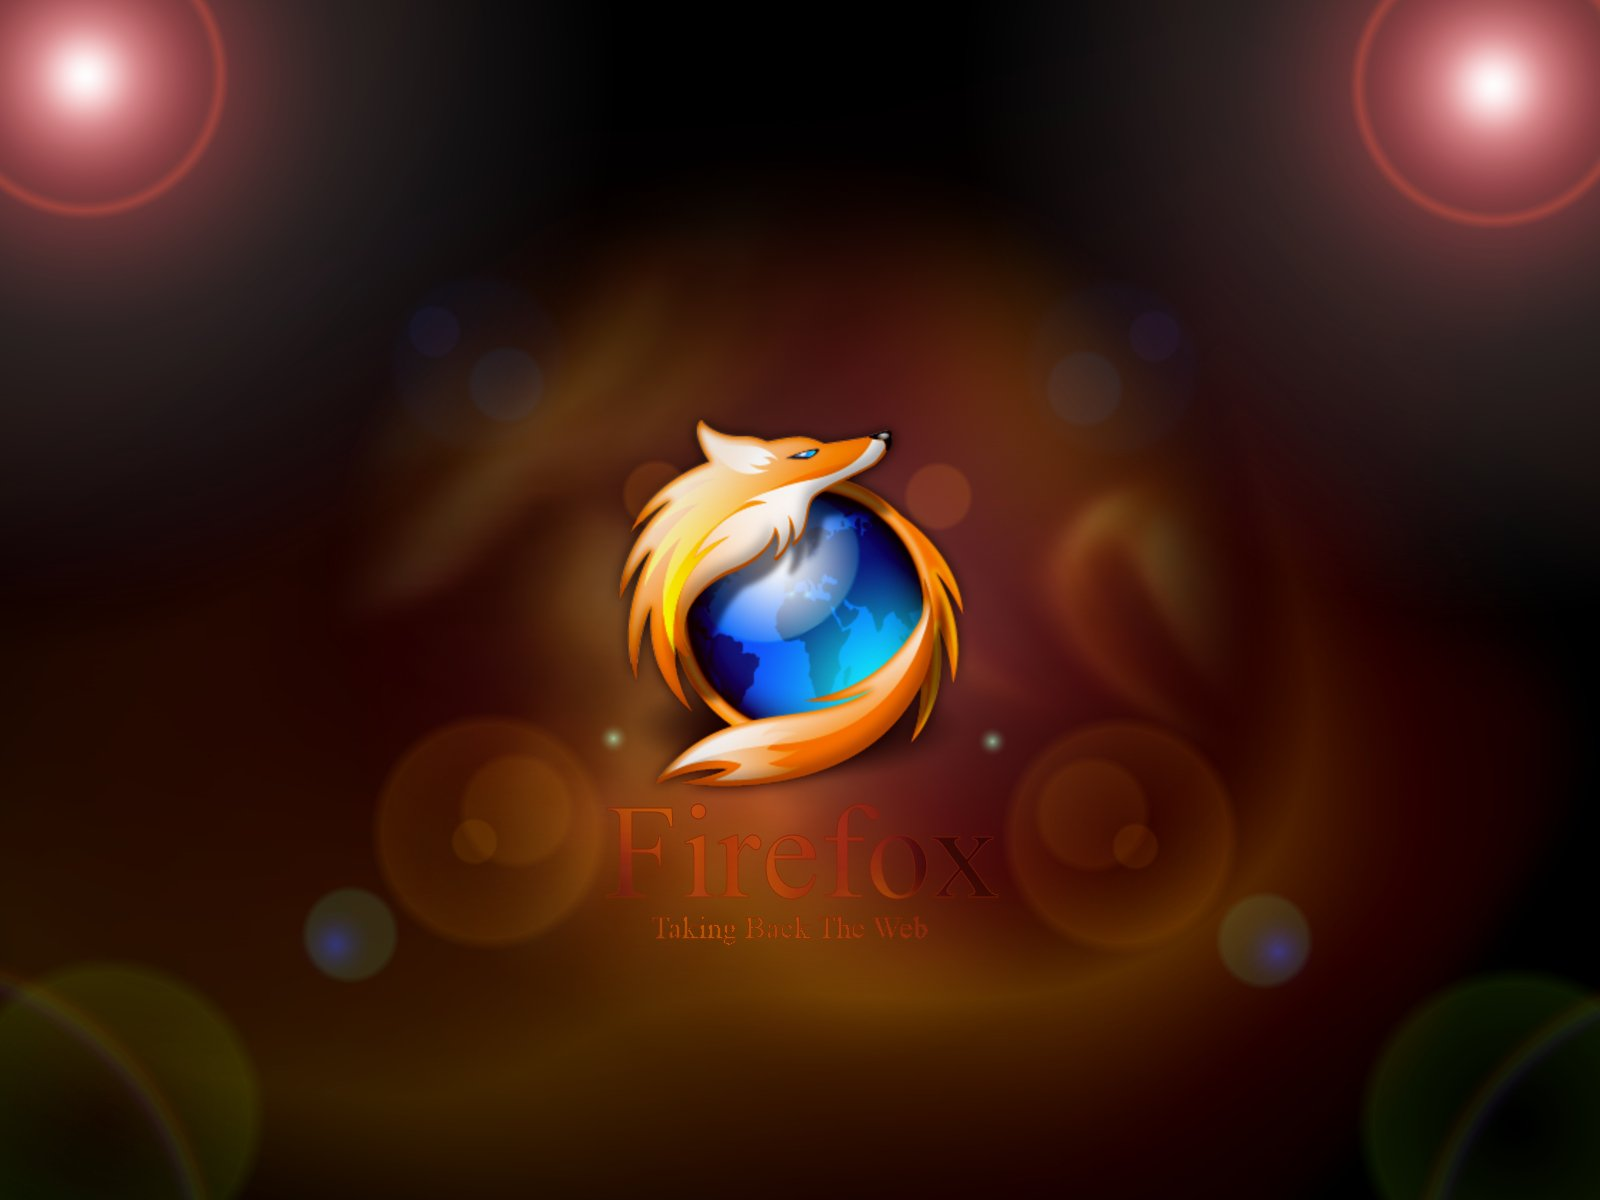 Firefox High Quality 353.84 Kb